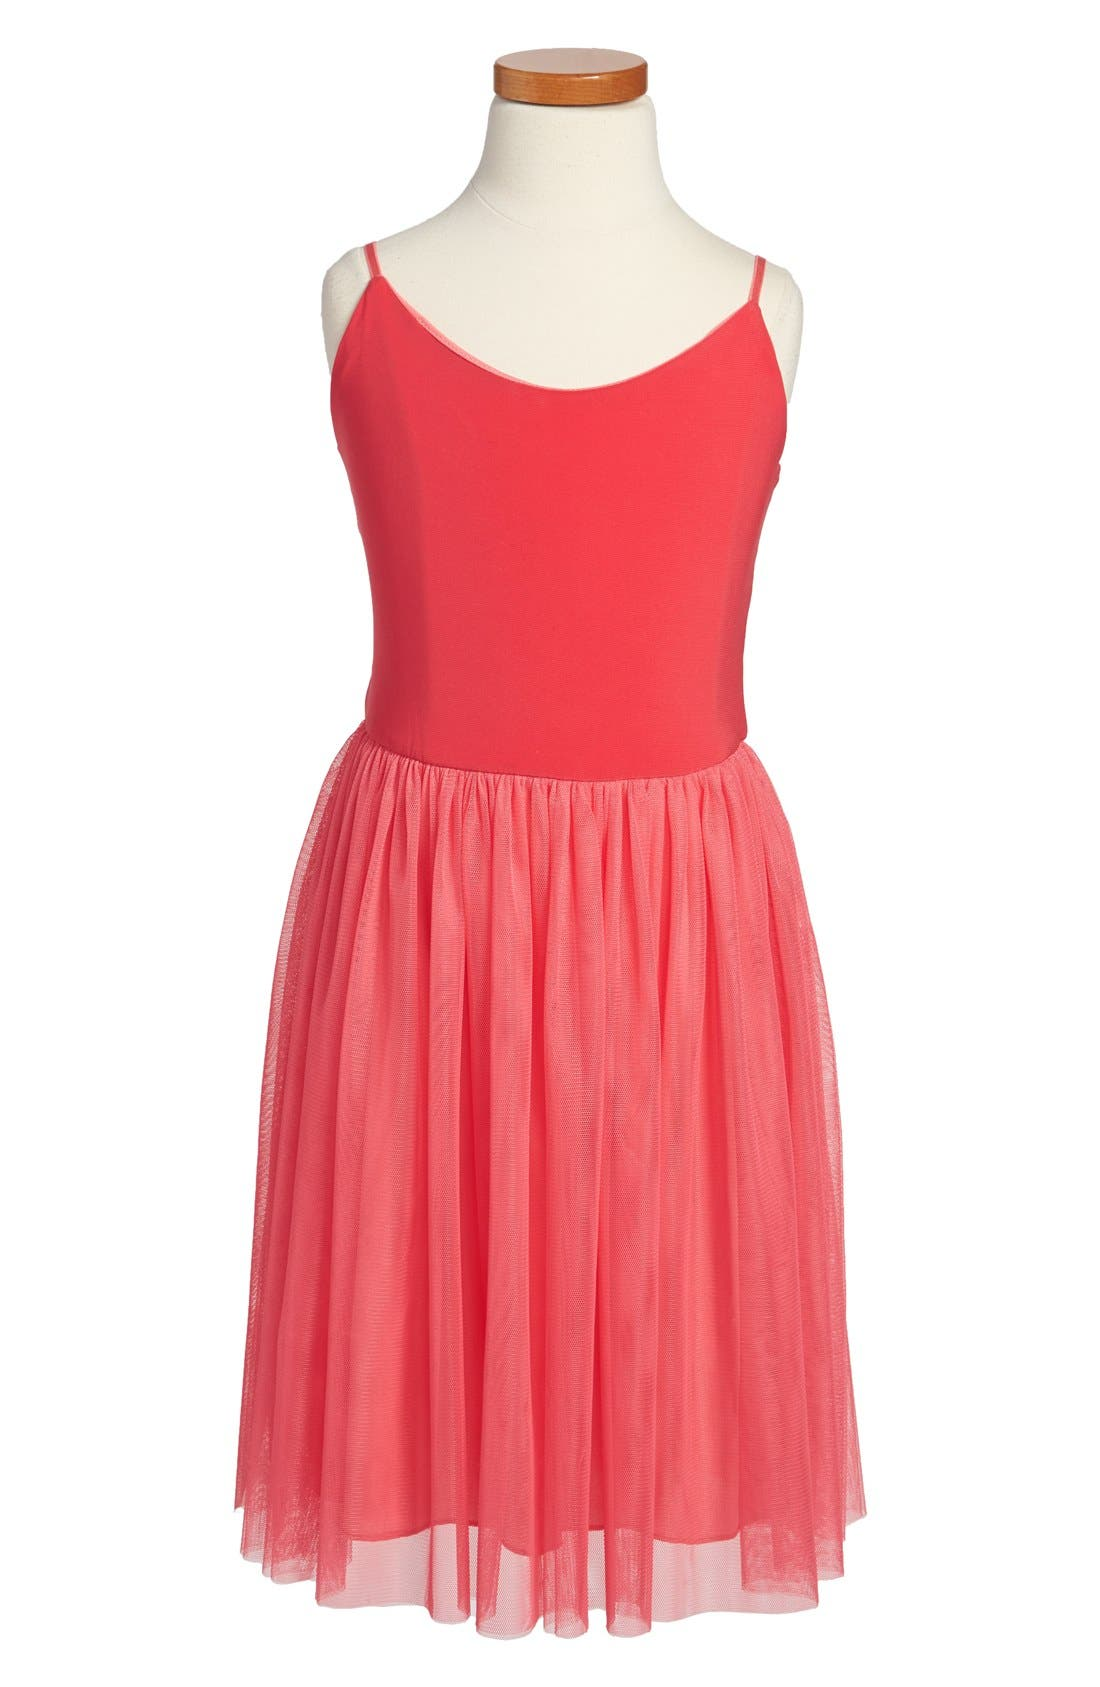 Alternate Image 1 Selected - Un Deux Trois Sleeveless Tulle Dress (Big Girls)